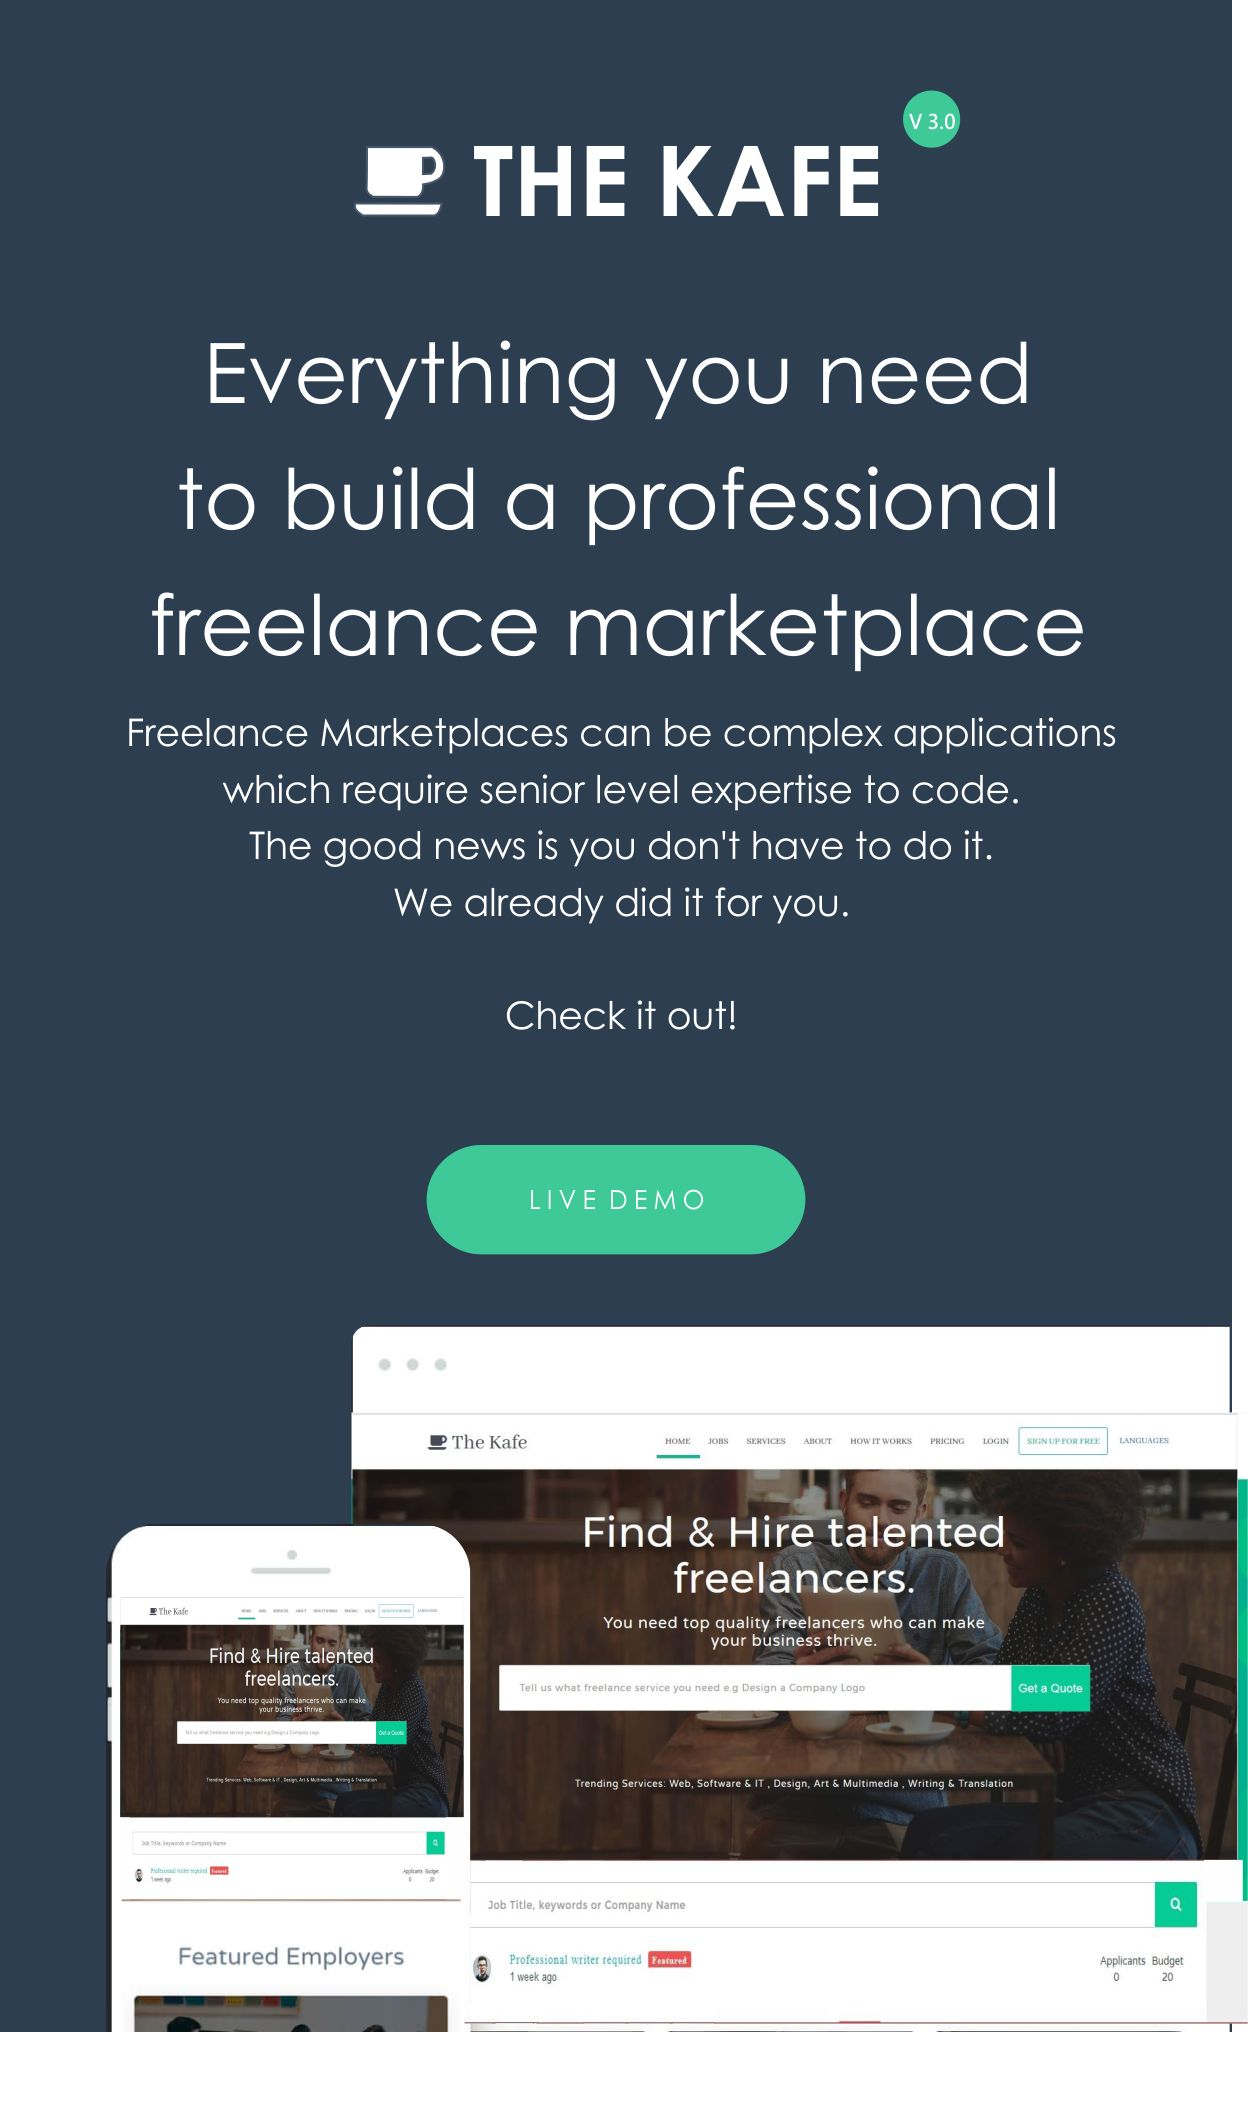 The Kafe - Ultimate Freelance Marketplace - 3